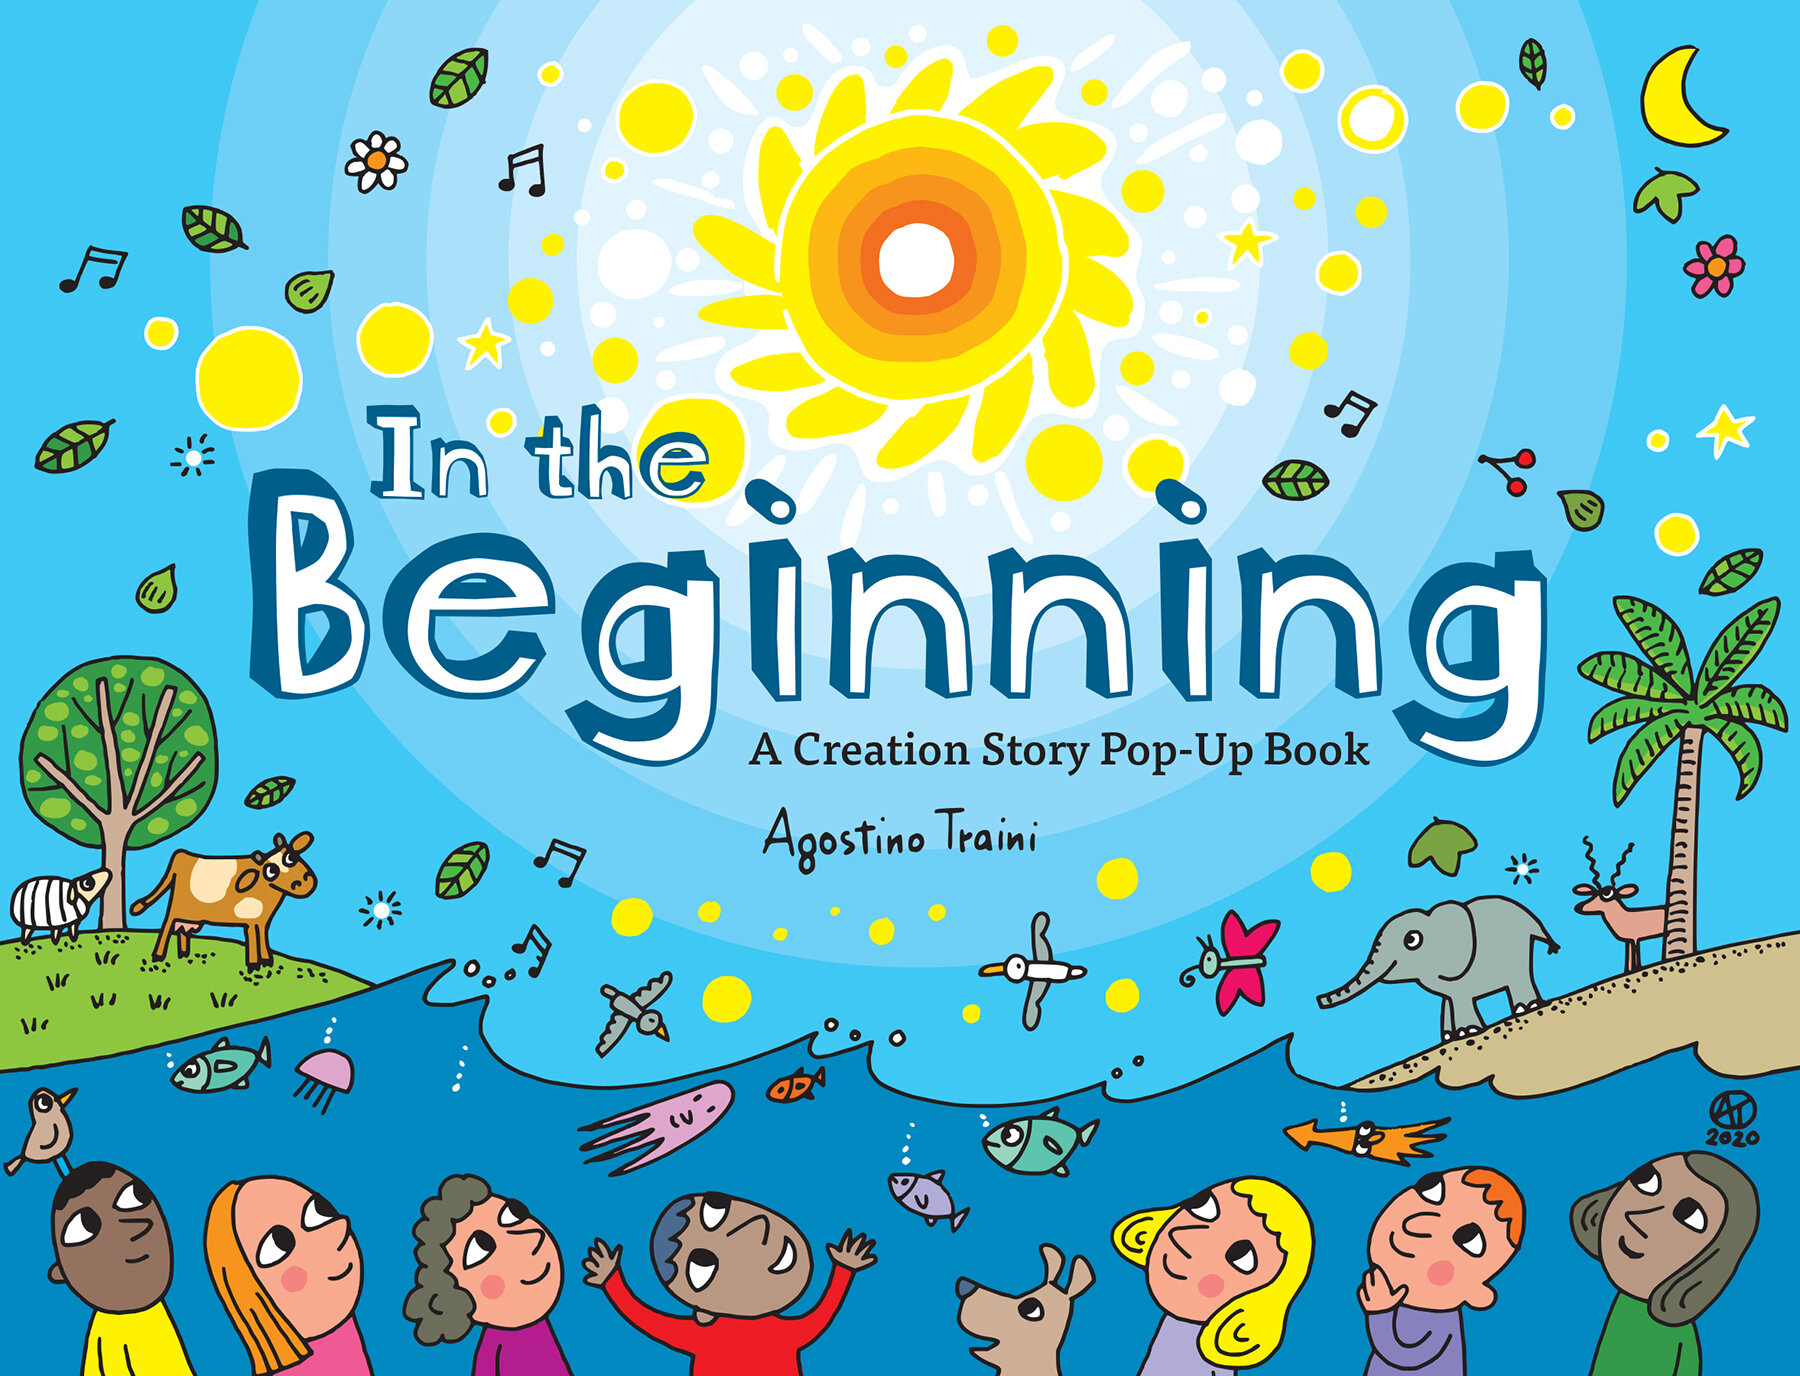 In the Beginning: A Creation Story Pop-Up Book